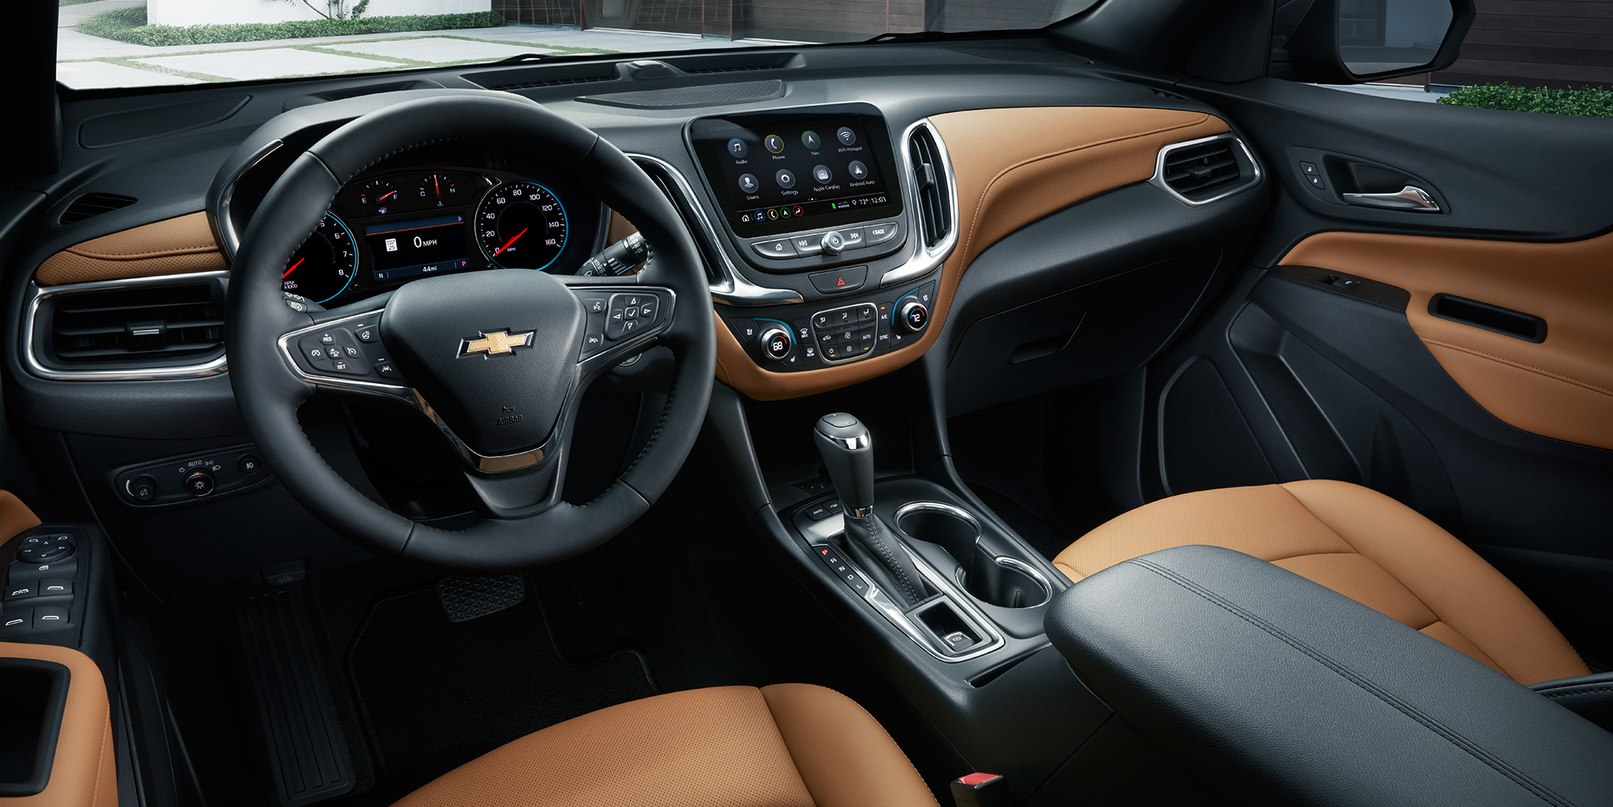 Interior of the Chevy Equinox